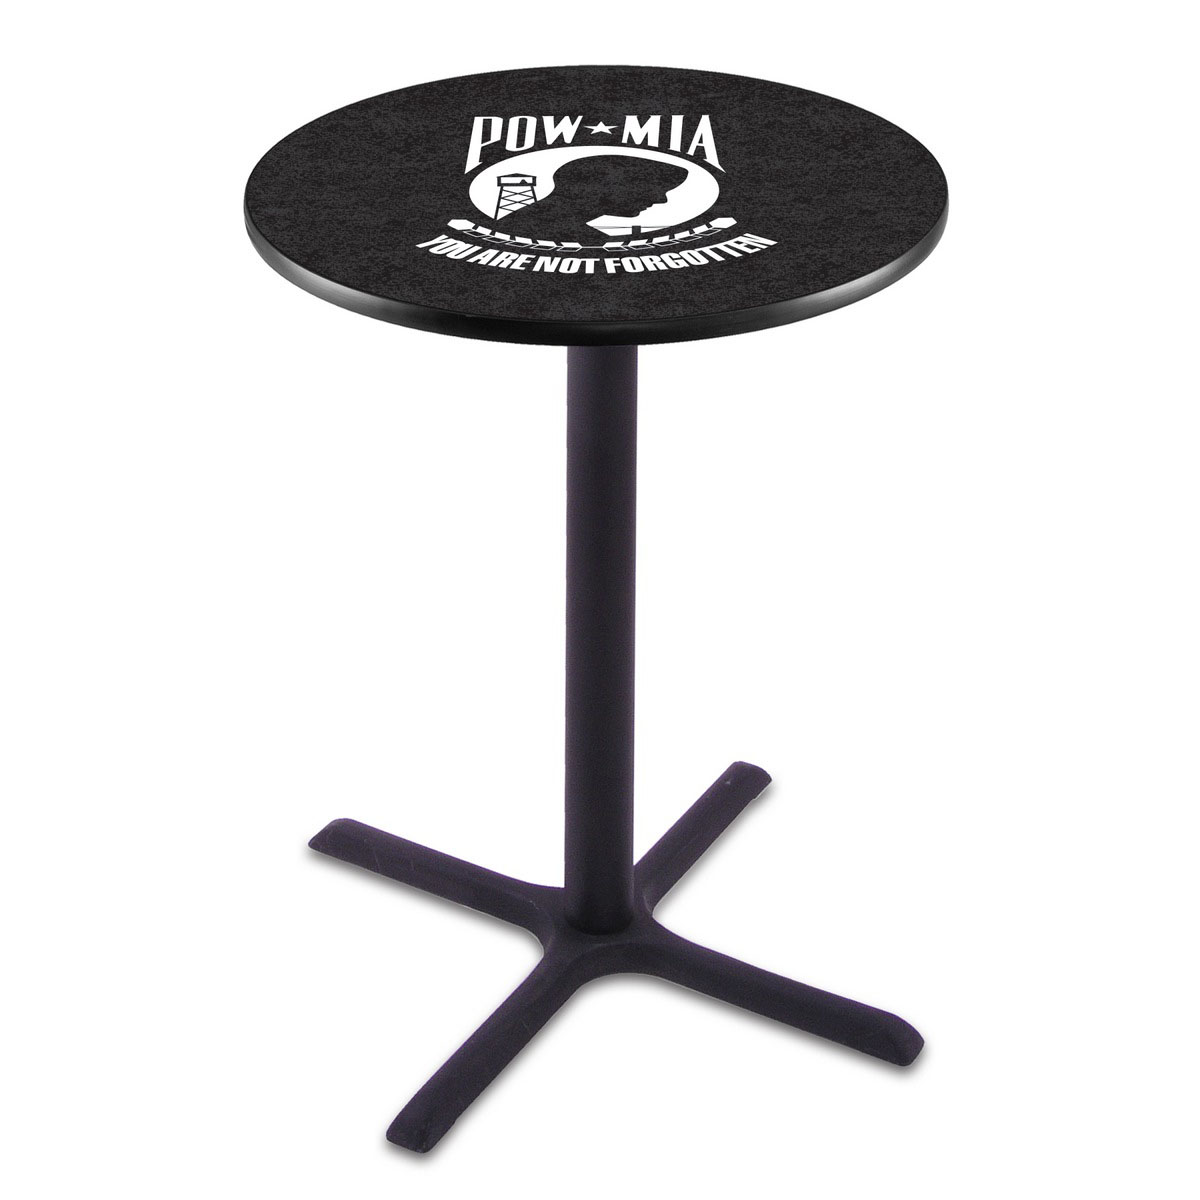 Superb-quality Pow Mia Wrinkle Pub Table Product Photo